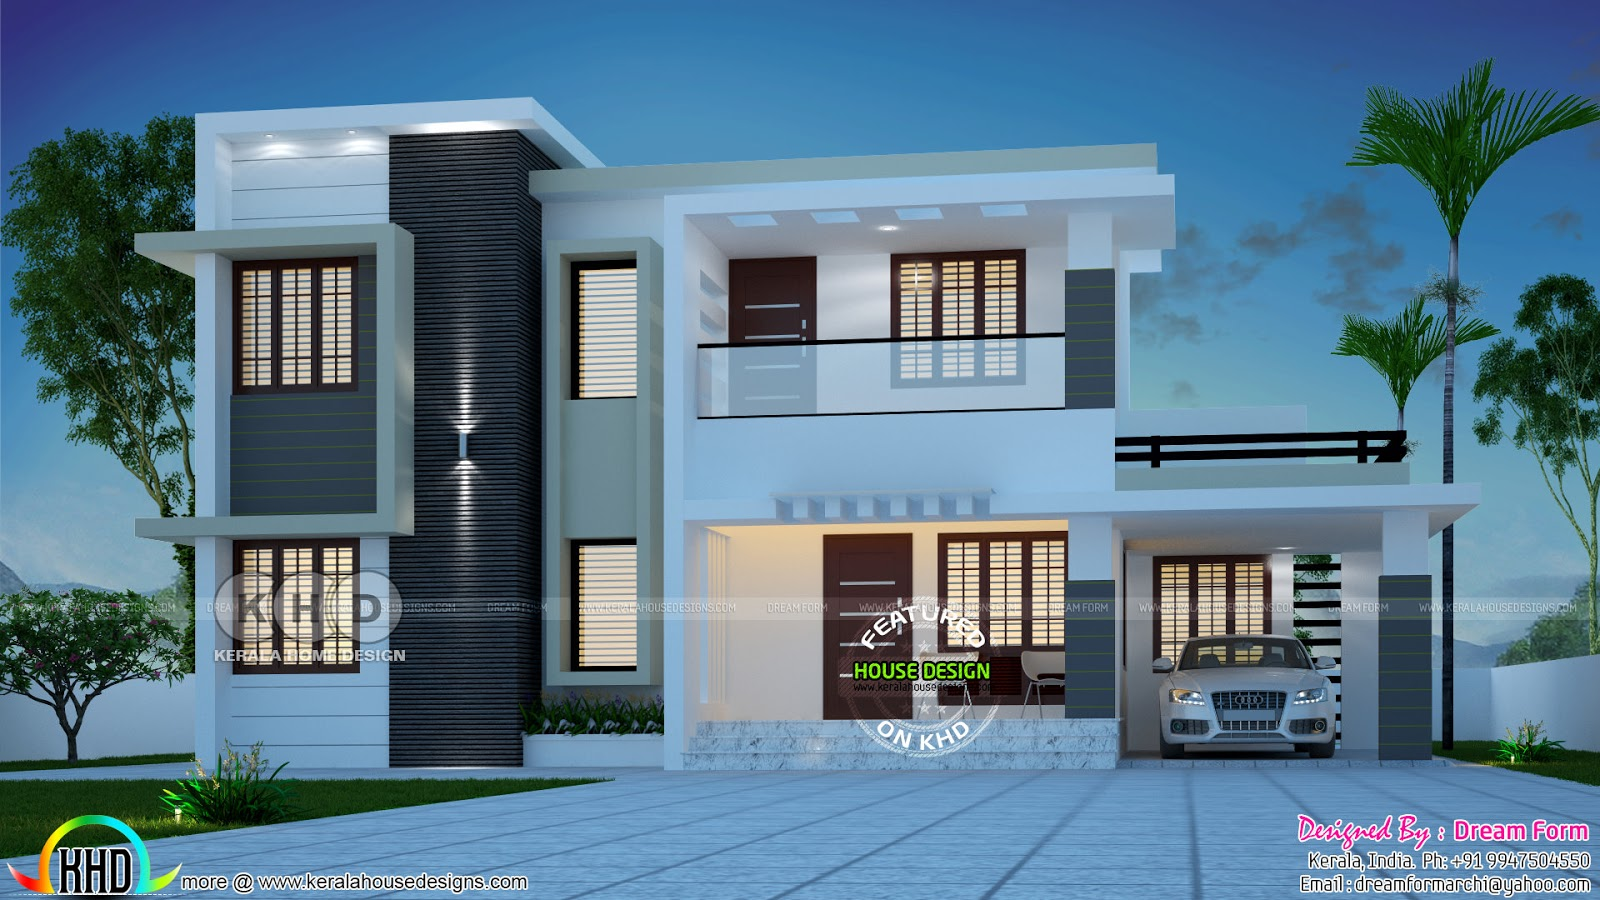 1989 Square Feet 4 Bedroom Flat Roof Contemporary House Plan Kerala Home Design And Floor Plans 8000 Houses